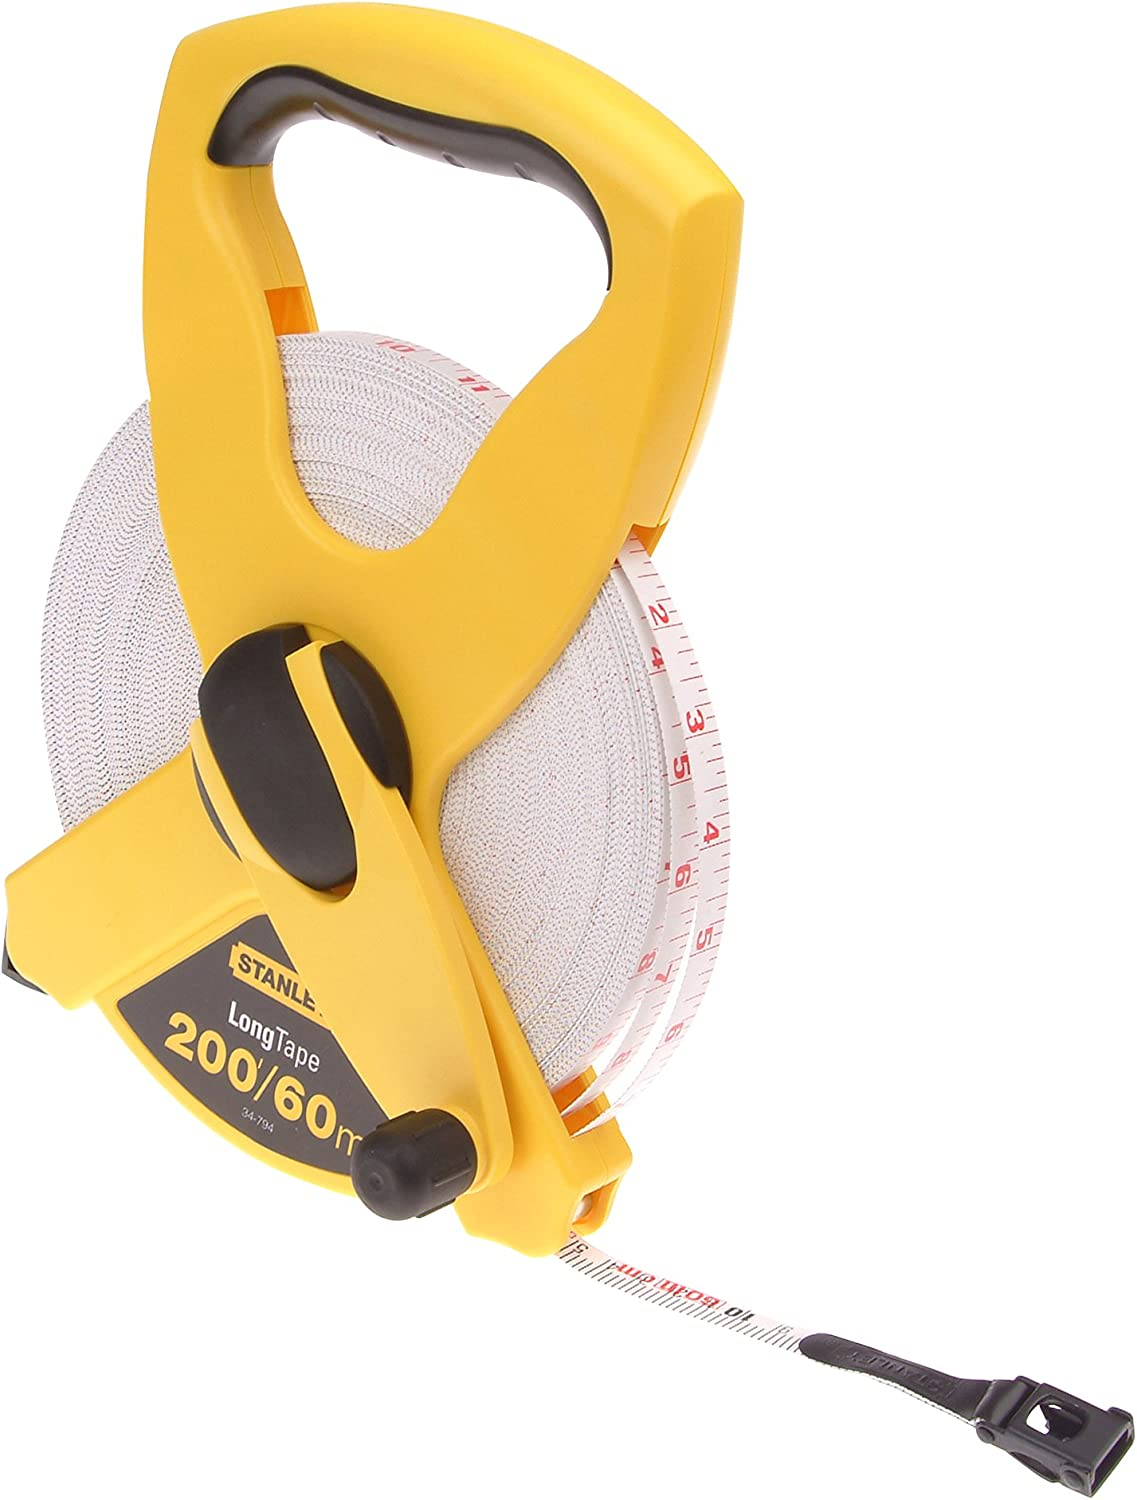 Open Reel Fibreglass Tape Today's only 60m Width 200ft 13mm Ranking TOP7